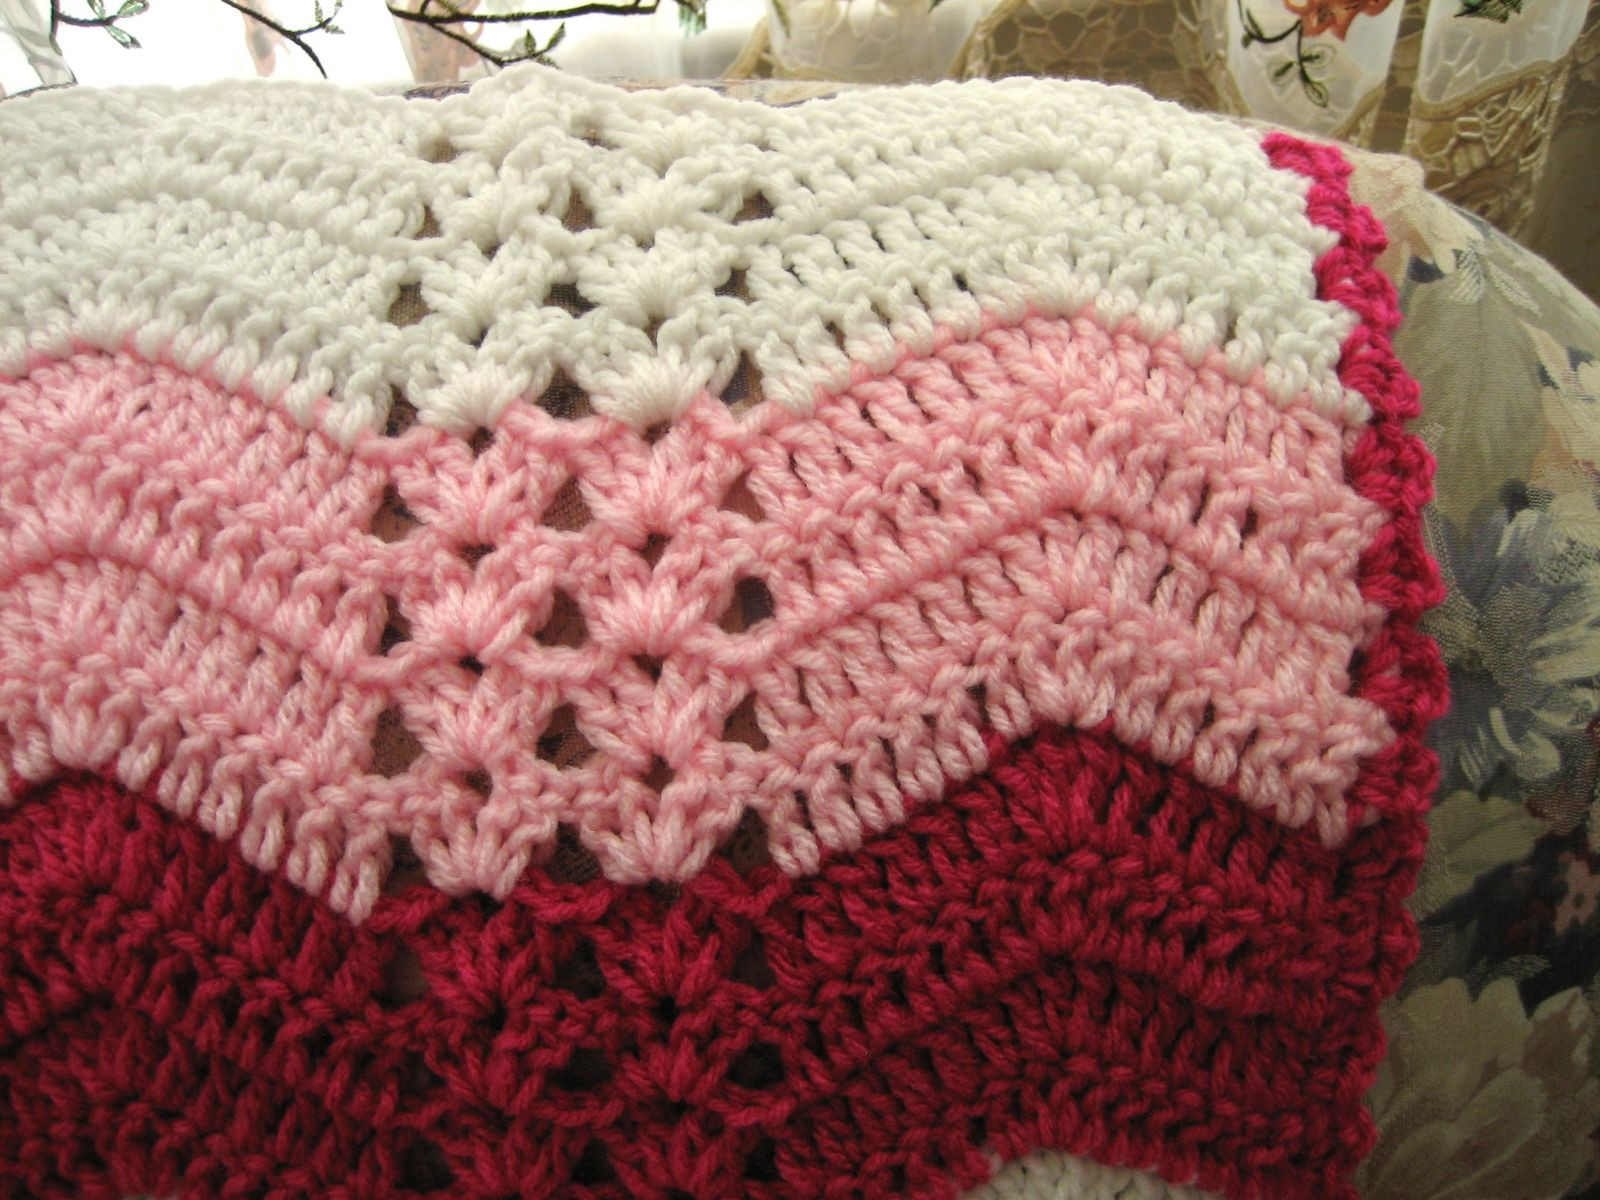 Afghan Blanket Crochet Inspirational White Chocolate Strawberry Double Shell Ripple Of Marvelous 48 Ideas Afghan Blanket Crochet